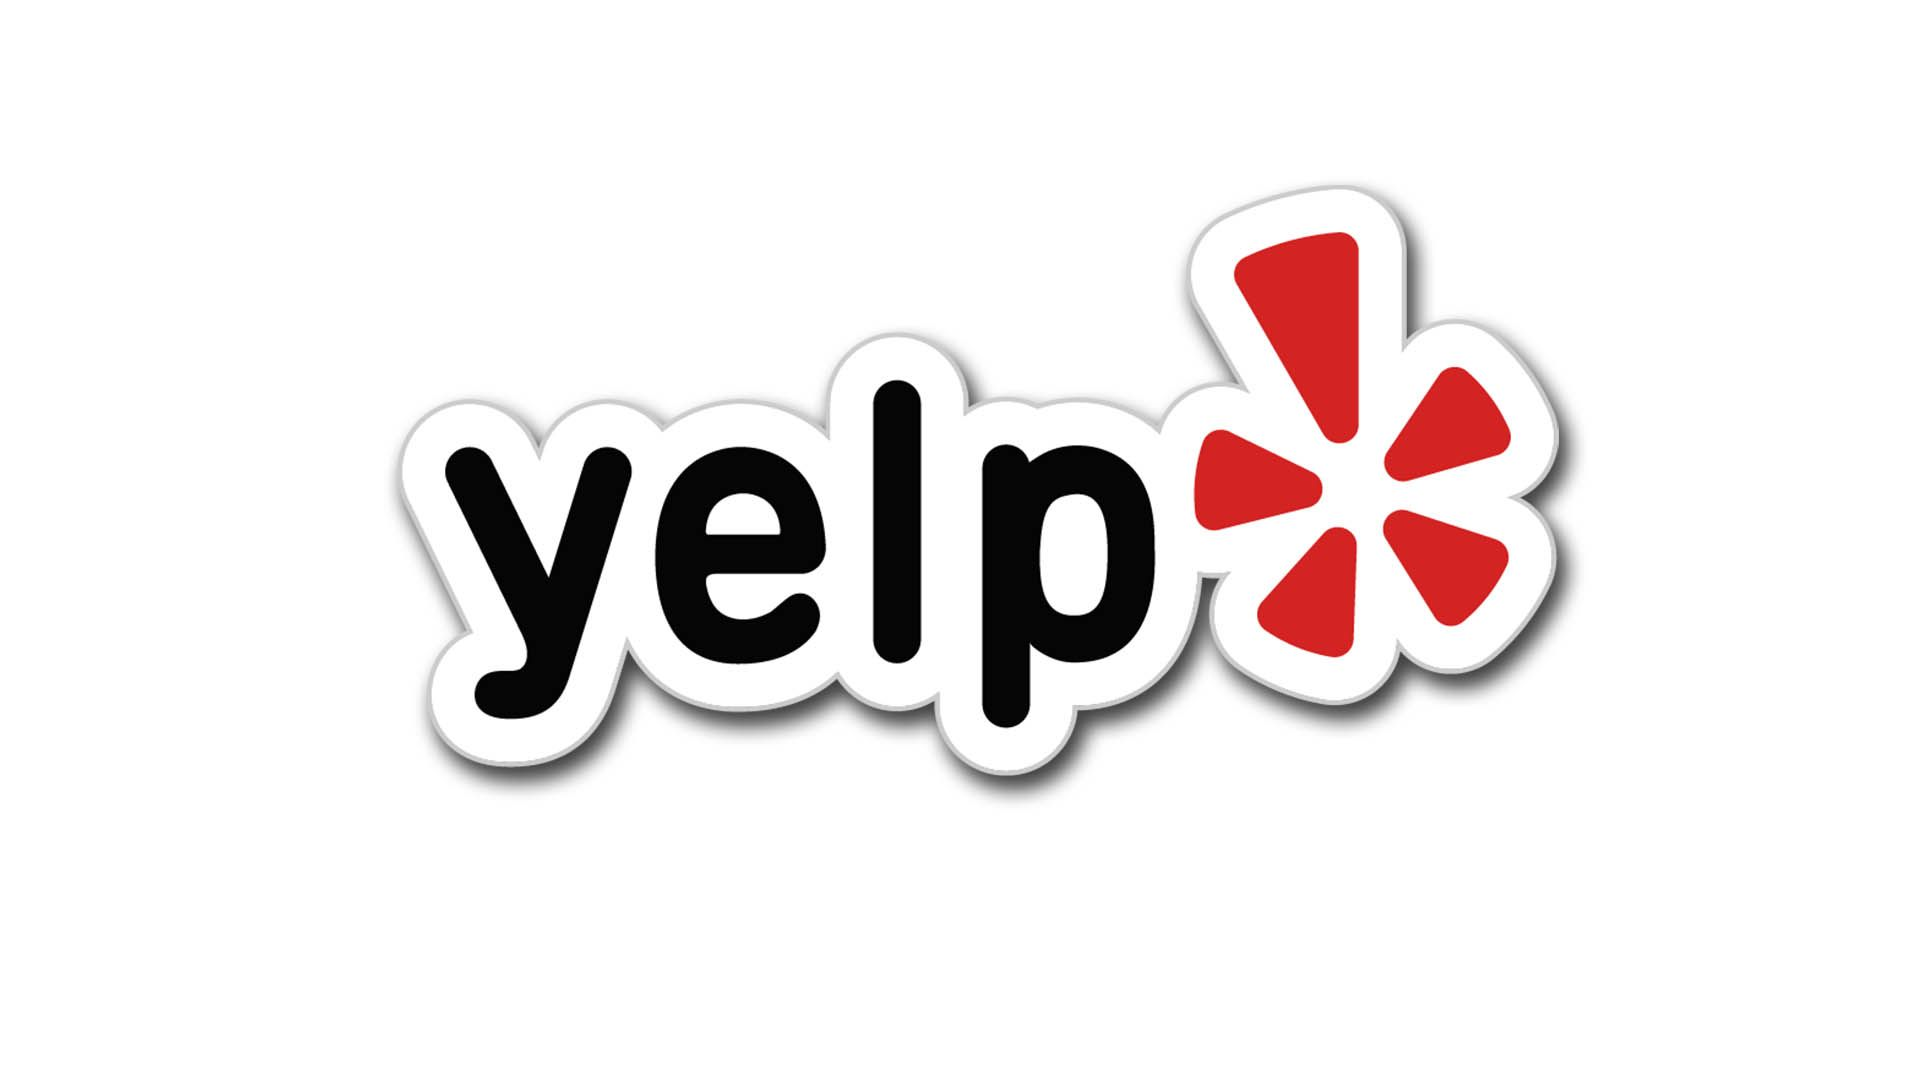 De 0 à 898 millions de dollars : étude de cas Yelp #GrowthHacking #WEbMarketing #FormationGrowthHacking #CentreDeFormationFrance #TunnelAARRR #AARRR #SocialMedia #CommunityManagement #SEO #Yelp #acquisition